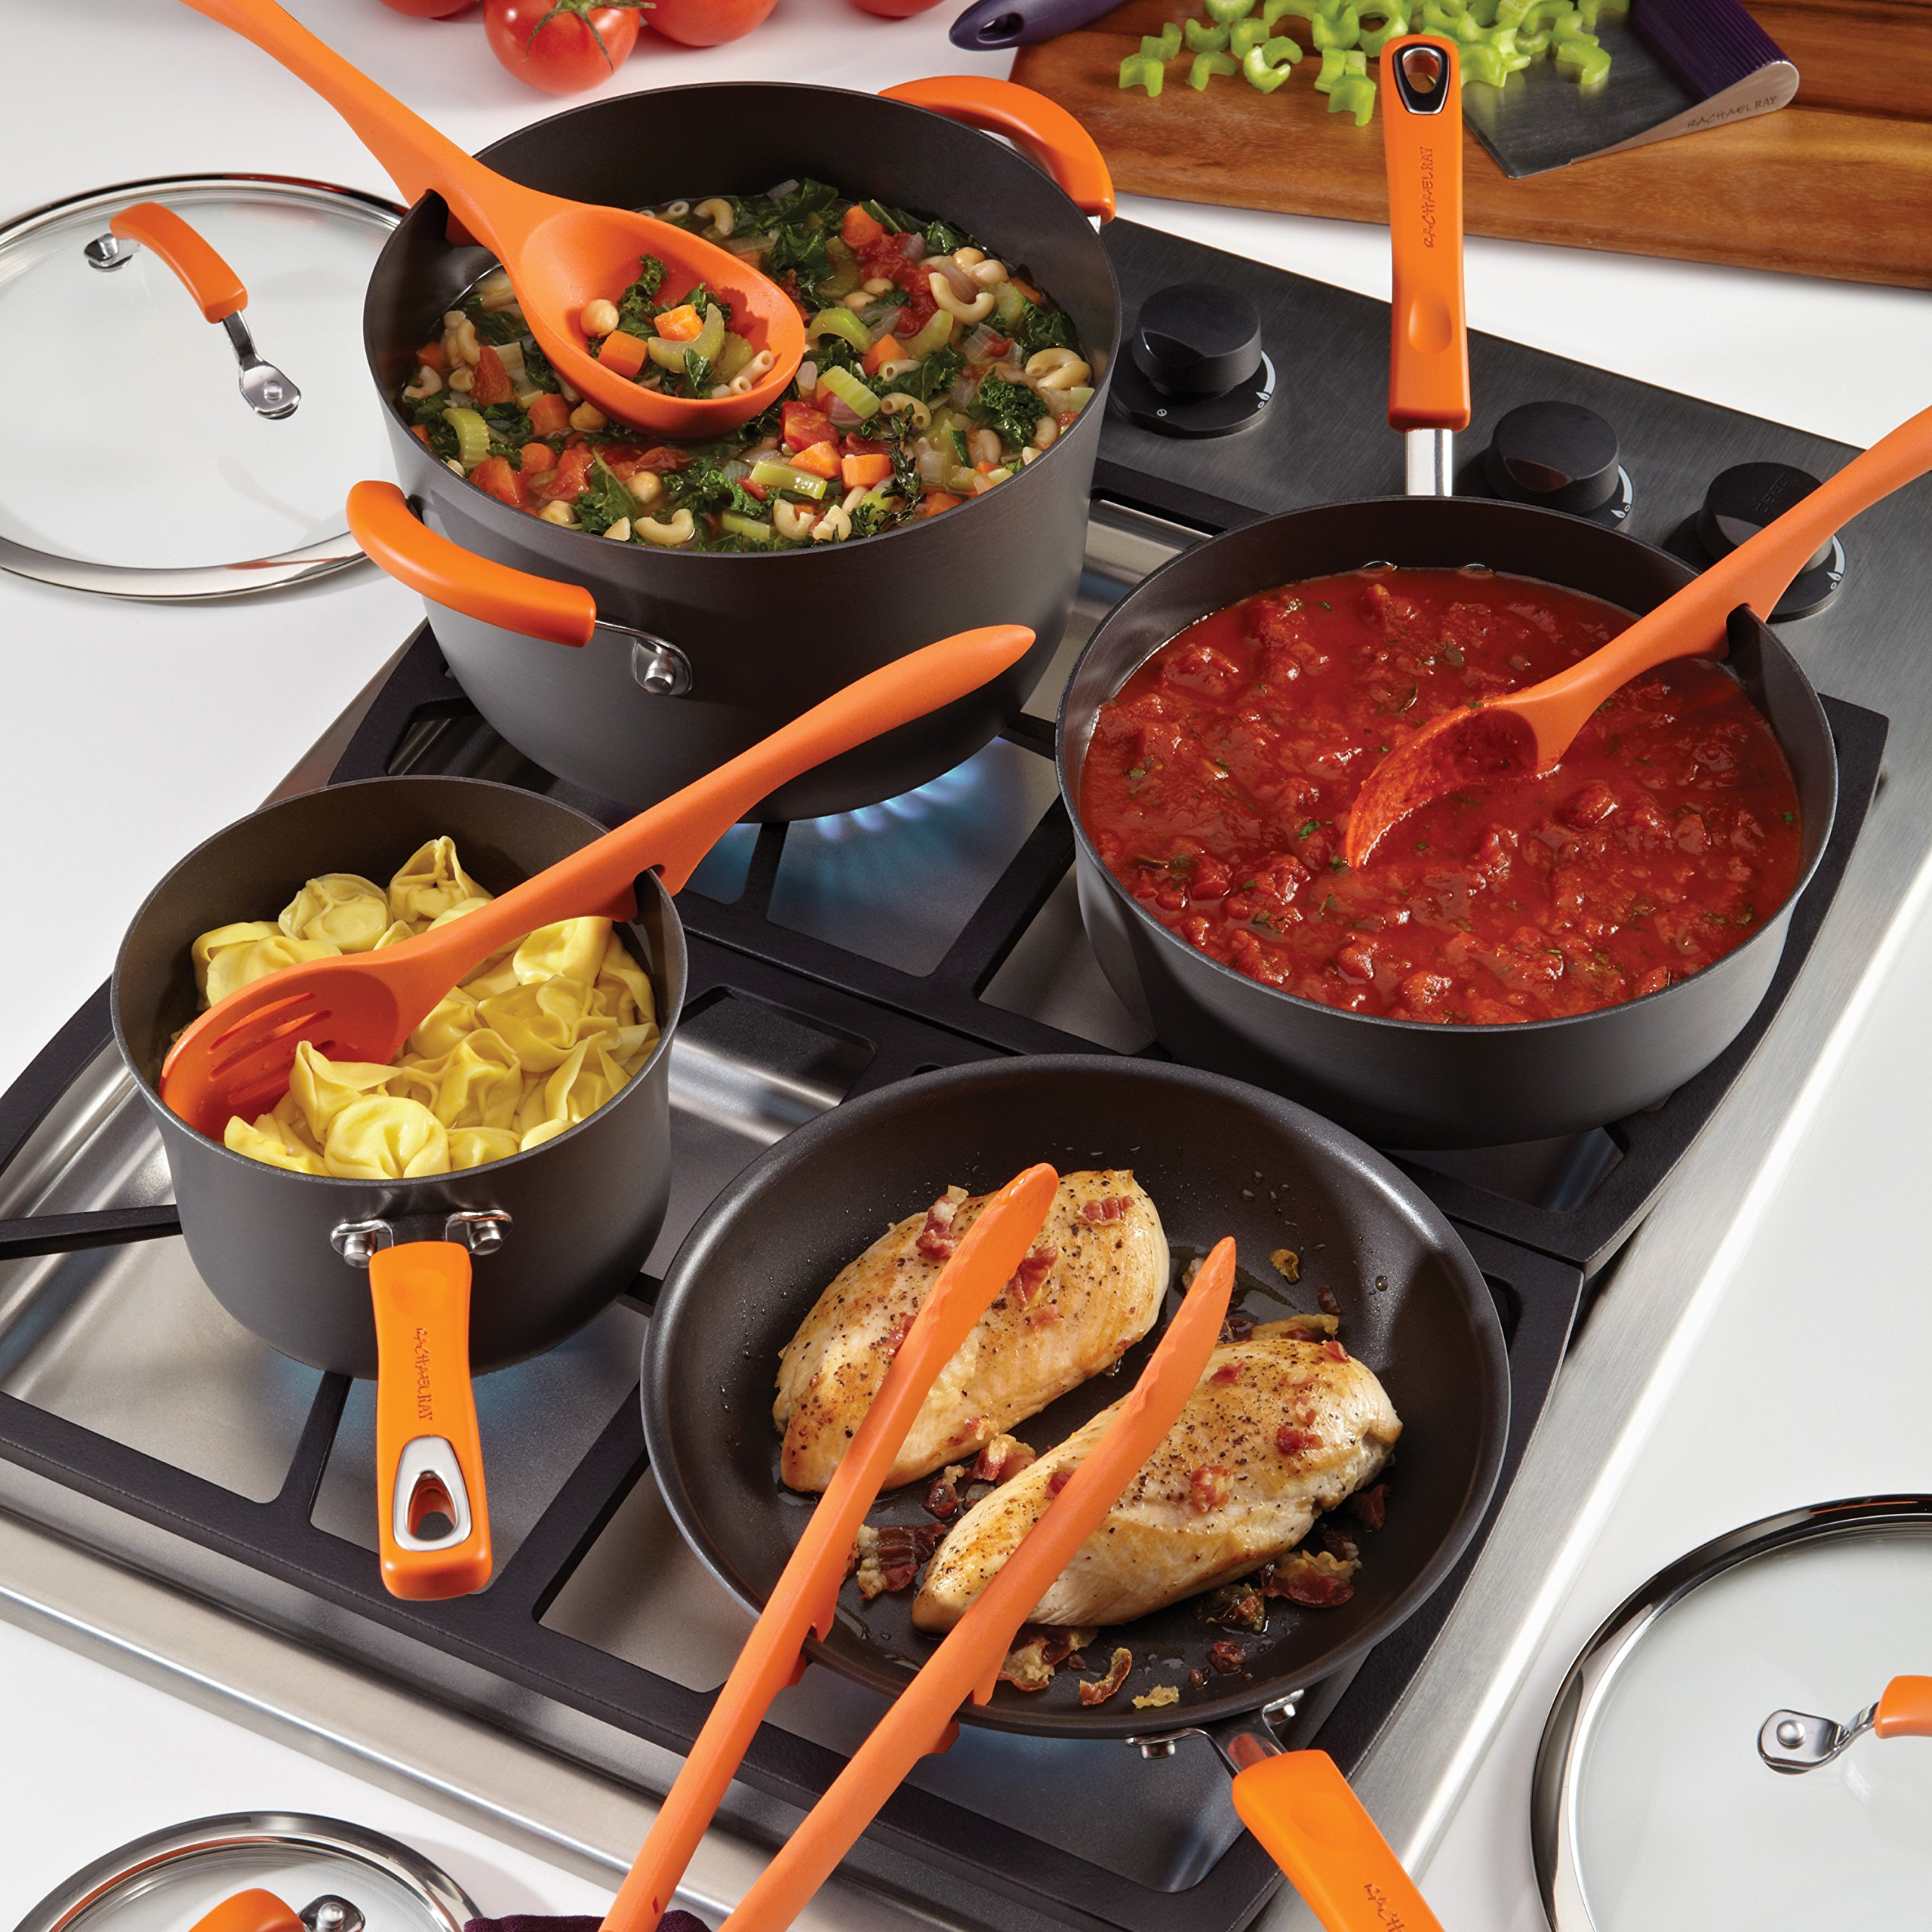 Rachael Ray Tools 2-Piece Lazy Spoon & Lazy Ladle Set, Orange by Rachael Ray (Image #4)